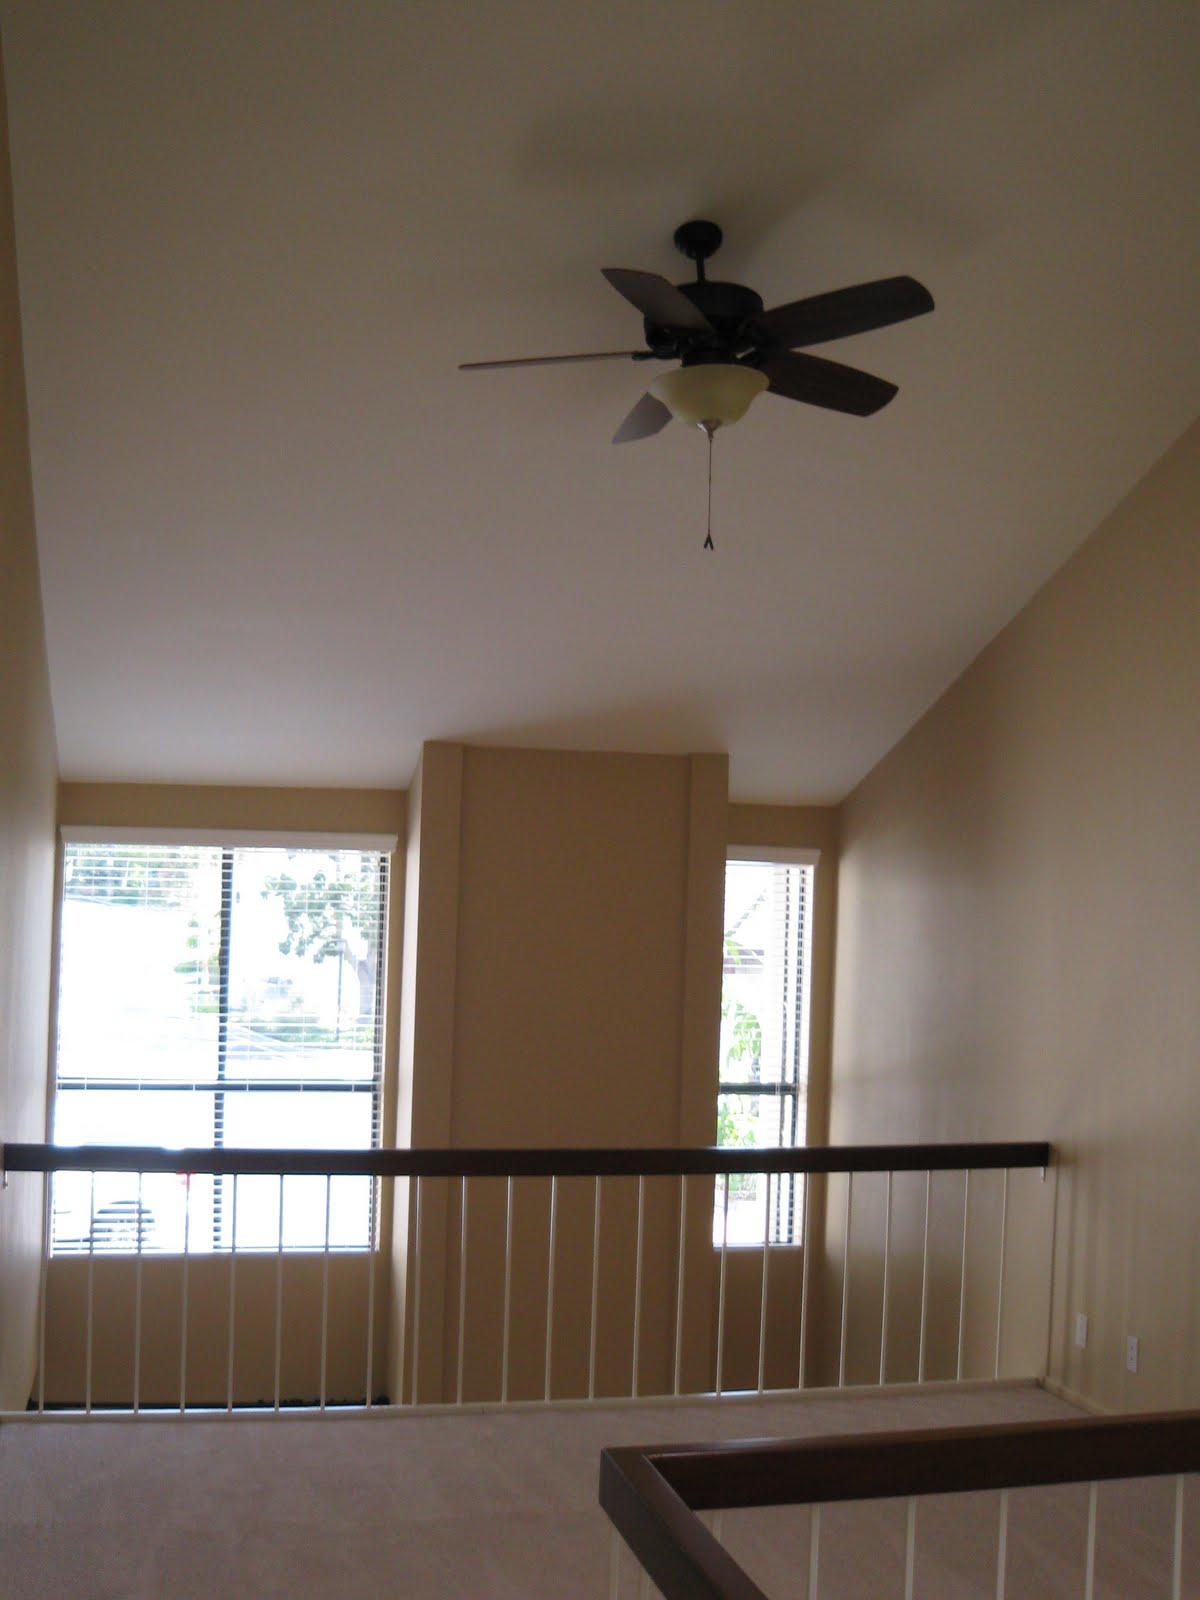 More than just an address monterey hills townhouse for lease for Bathroom ceiling fans